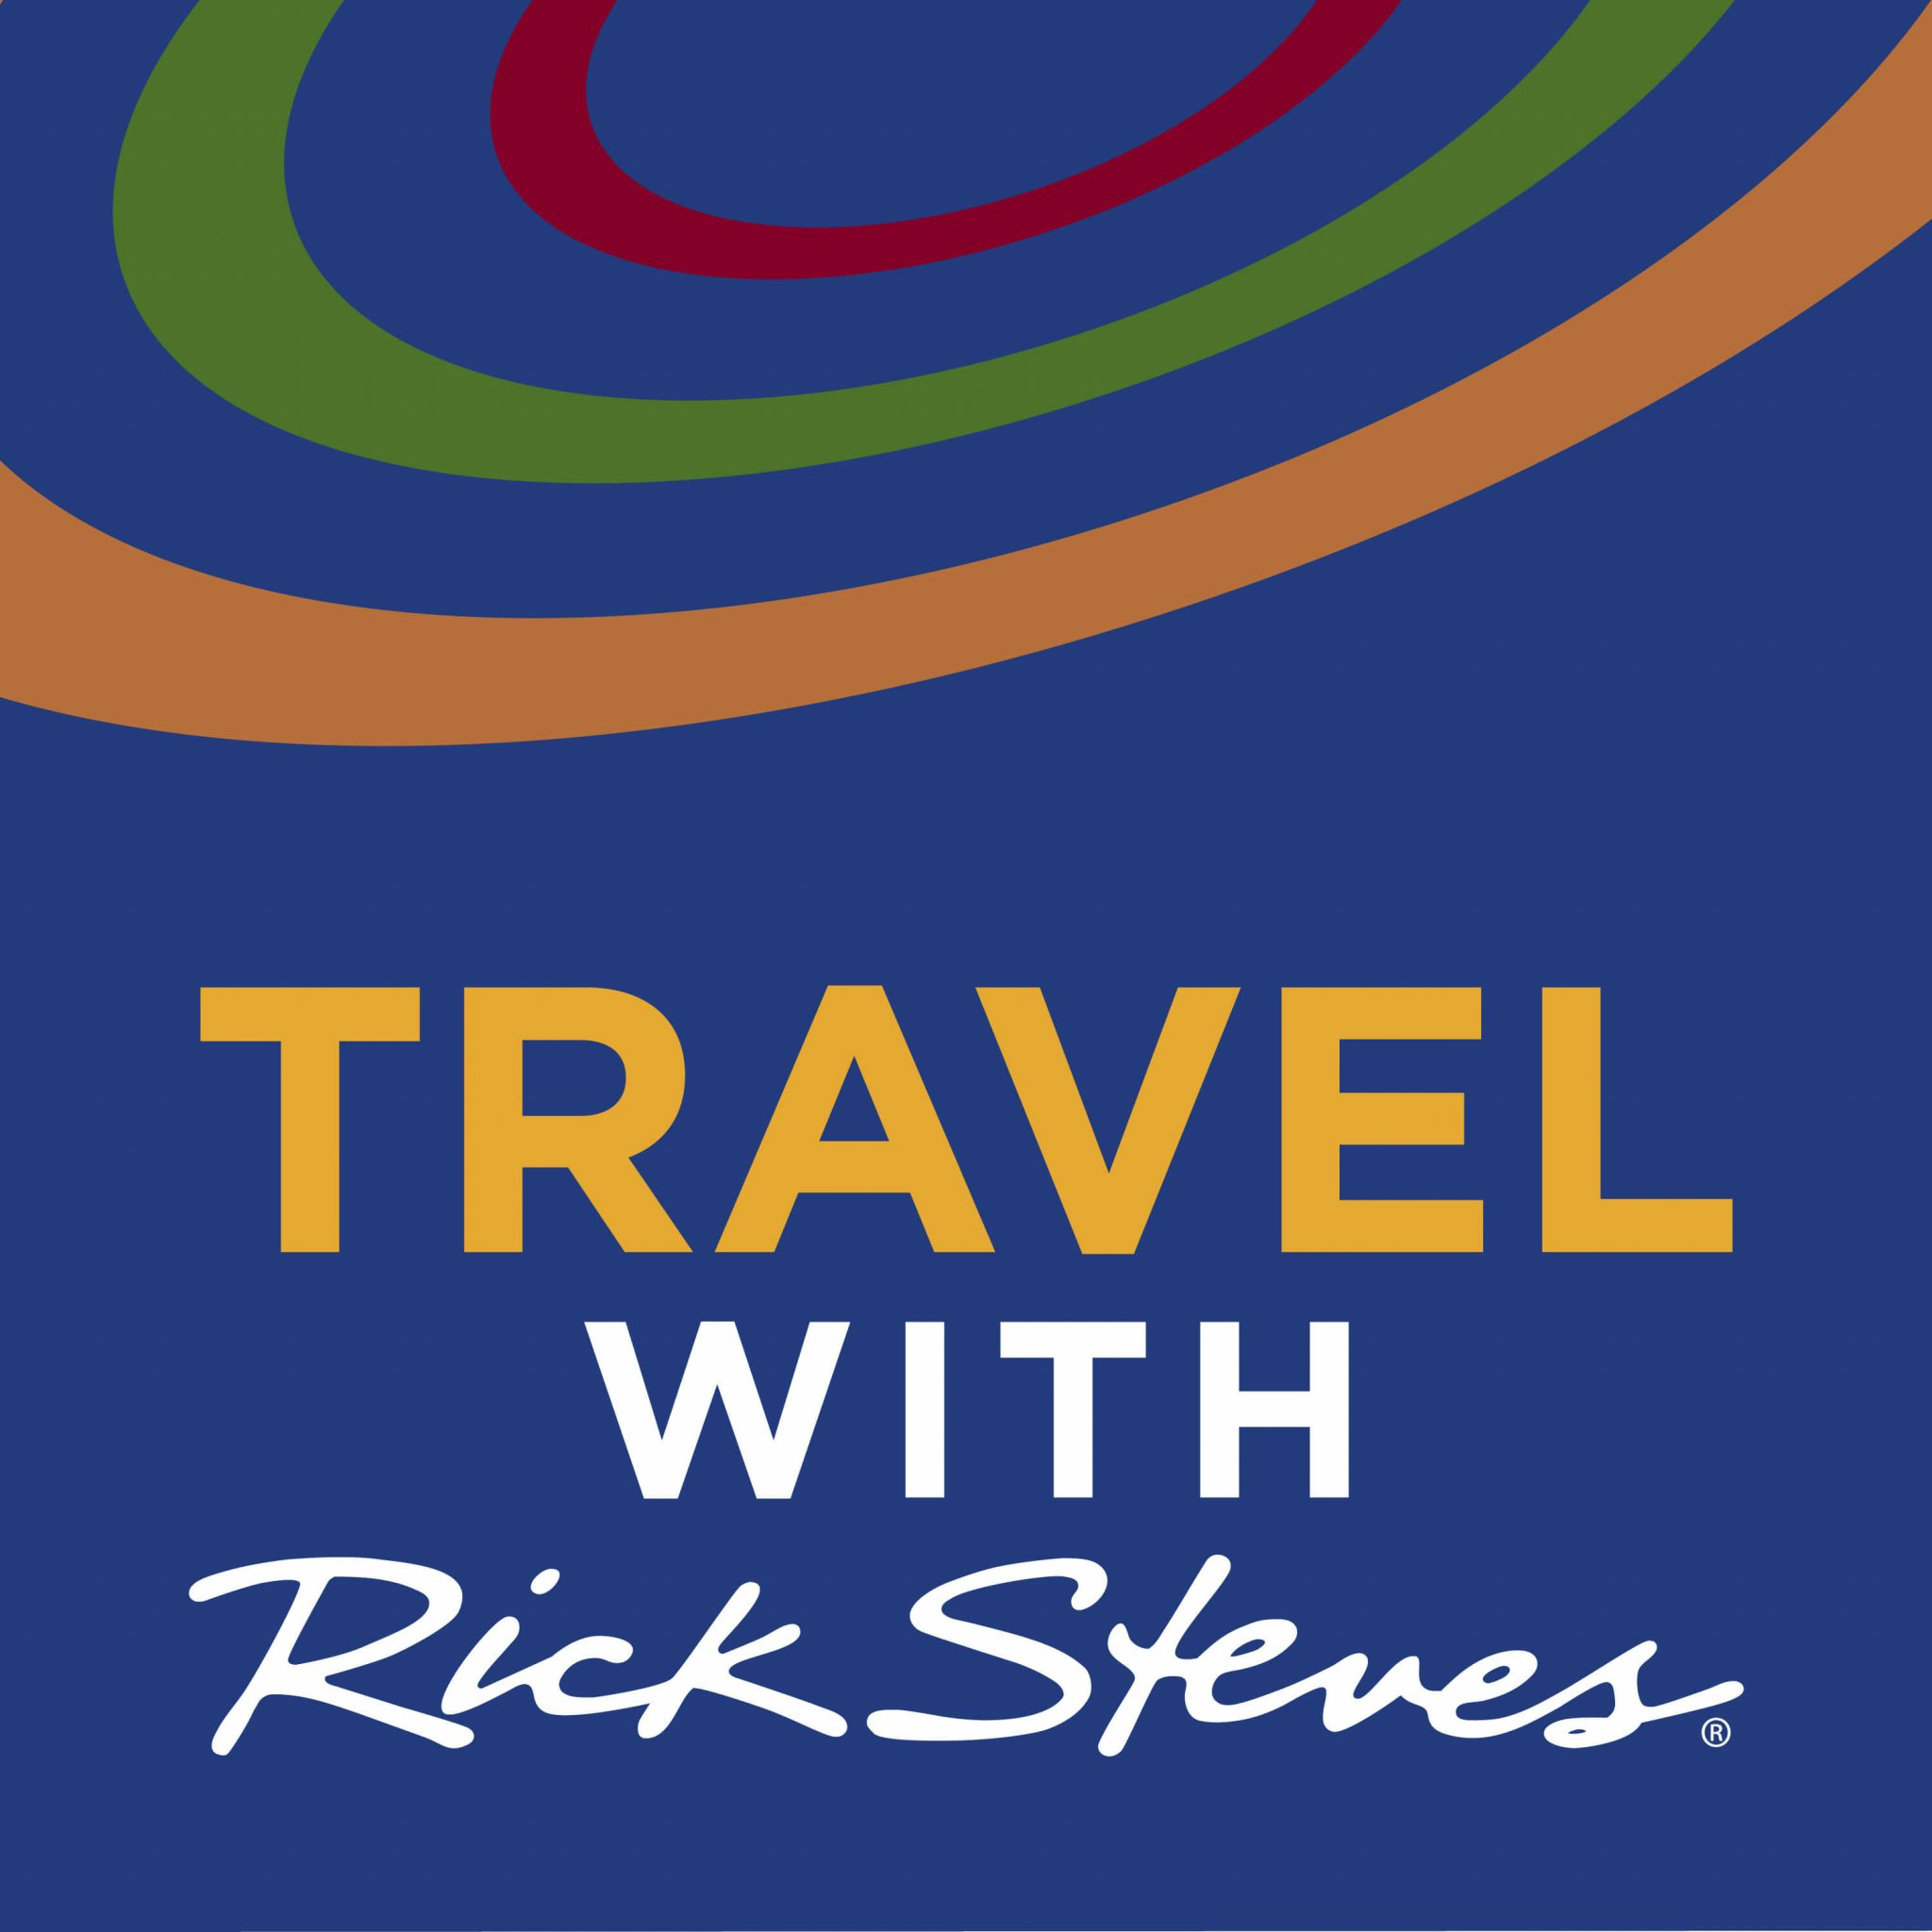 Travel with Rick Steves, One of the best travel podcasts